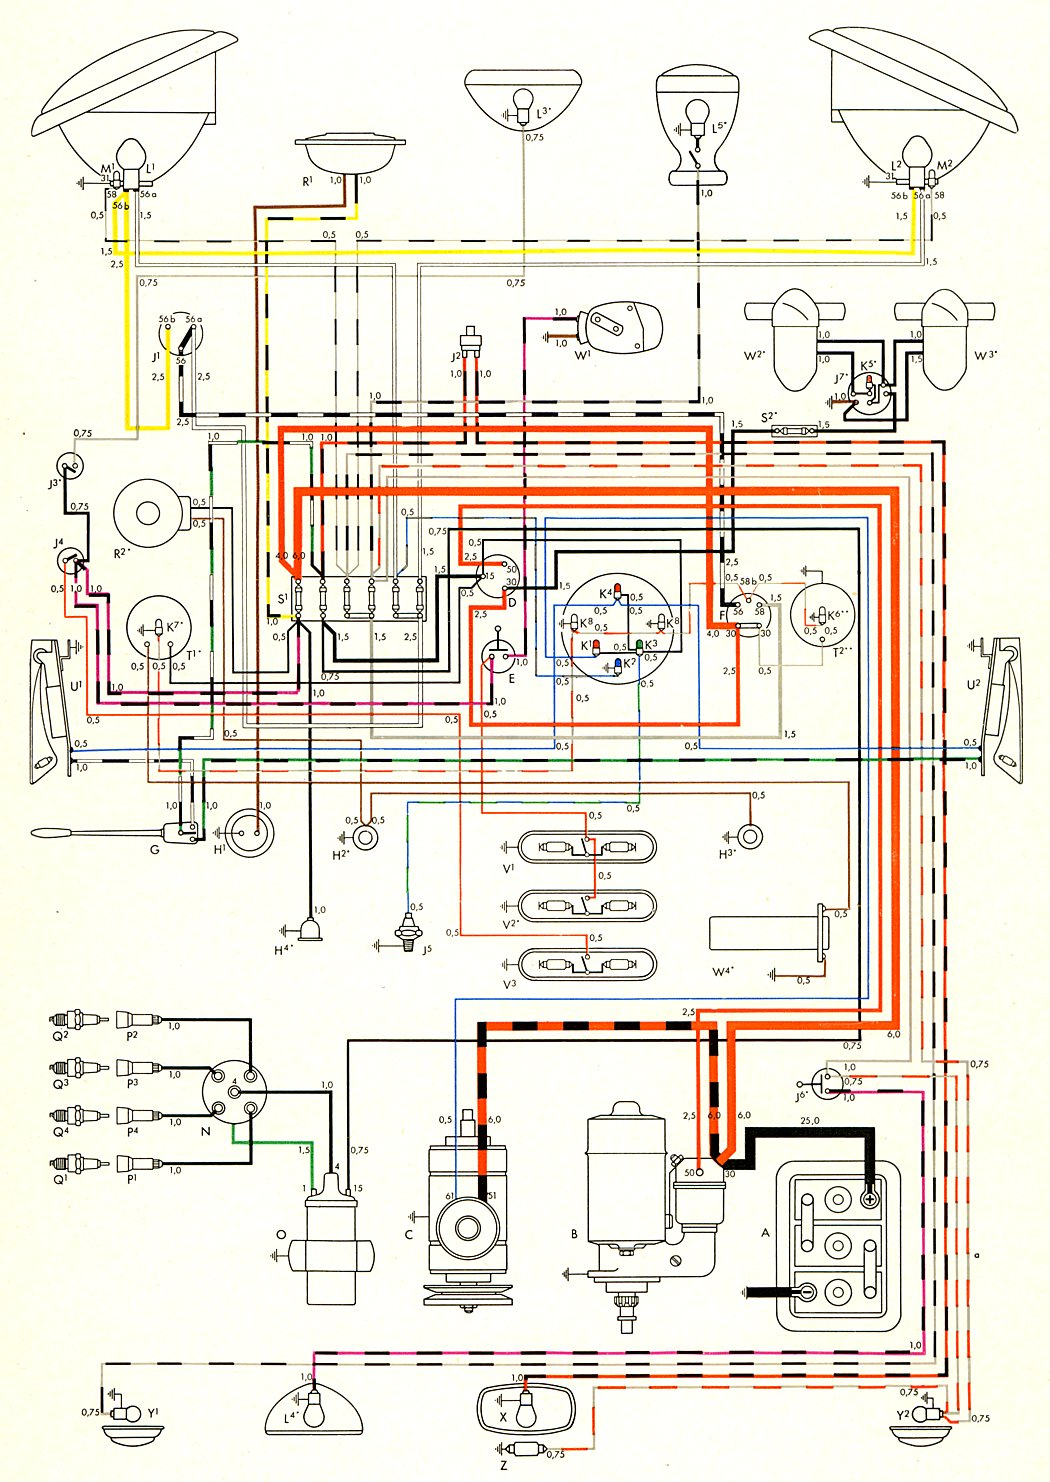 Vw T4 Headlight Wiring Diagram Trusted Diagrams Vintage Loom Steering Bug Wiper Motor